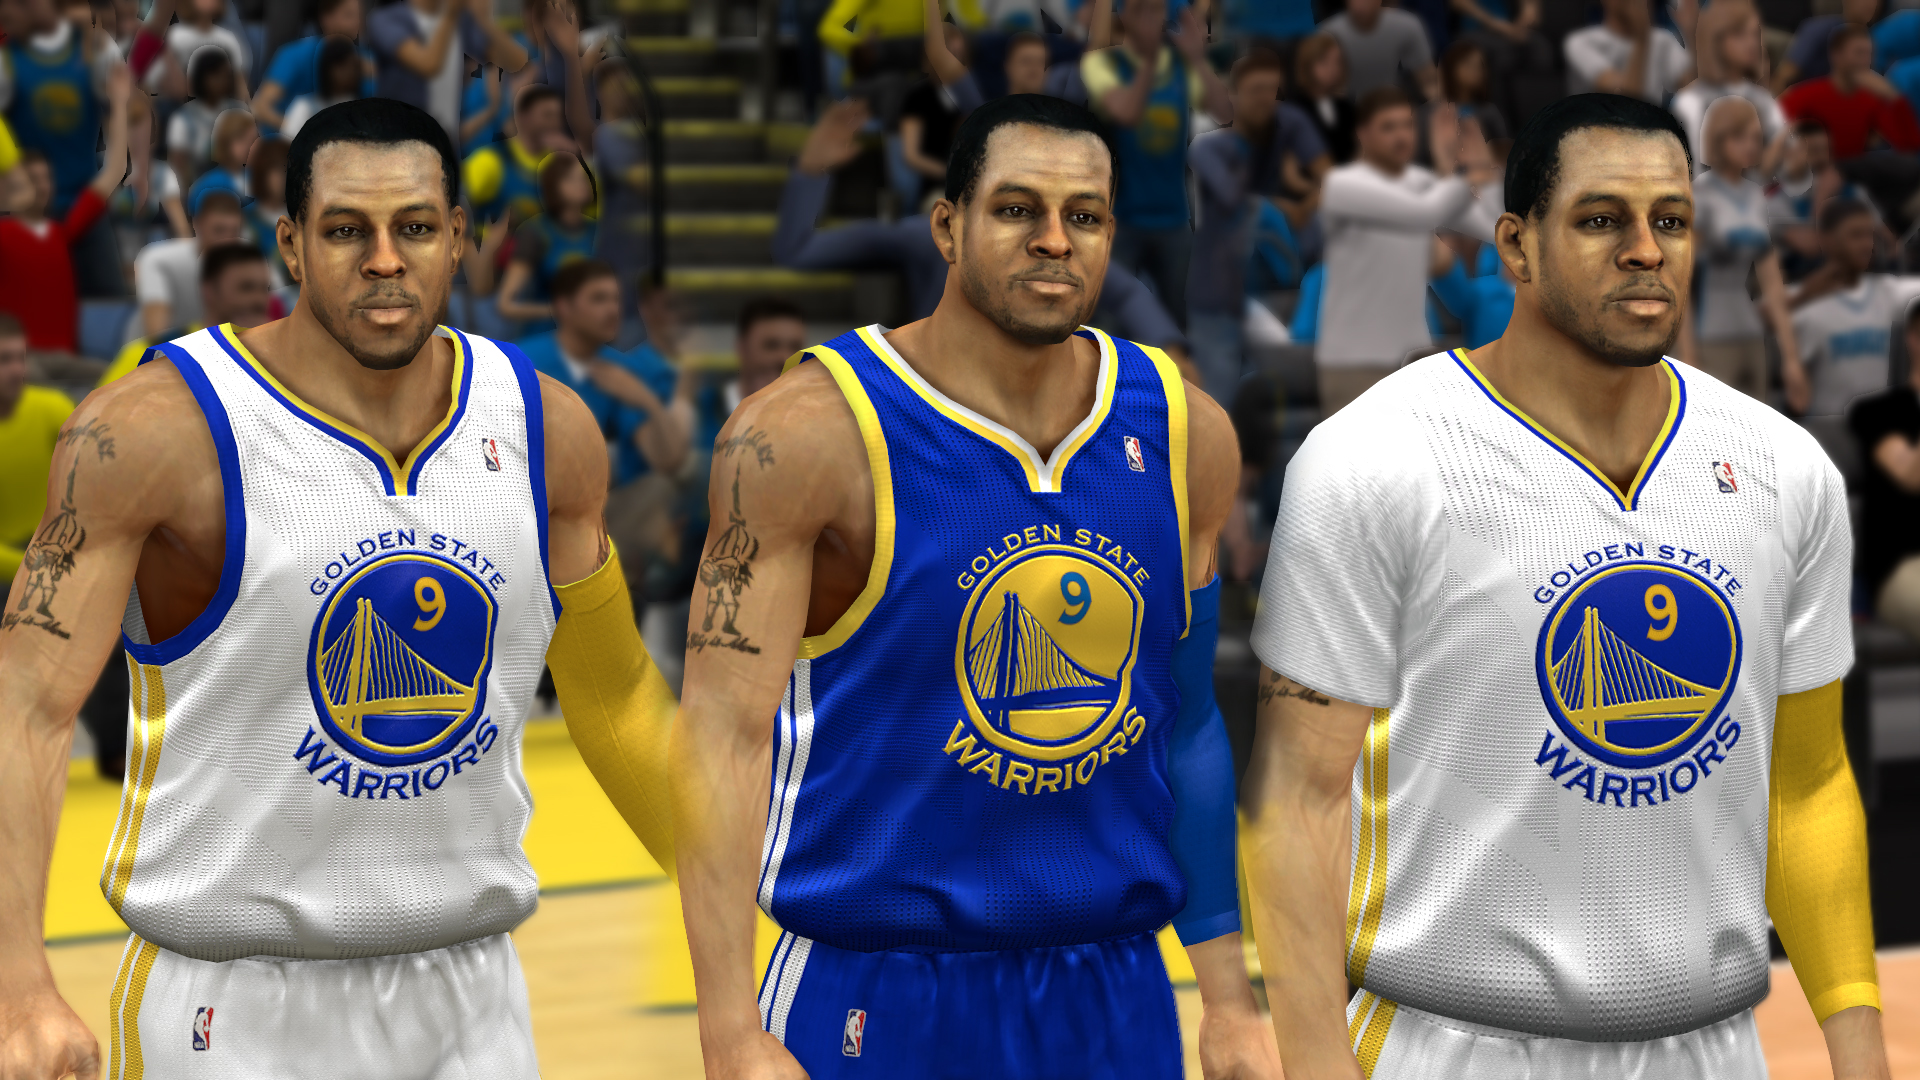 Golden State Warriors Jersey Update